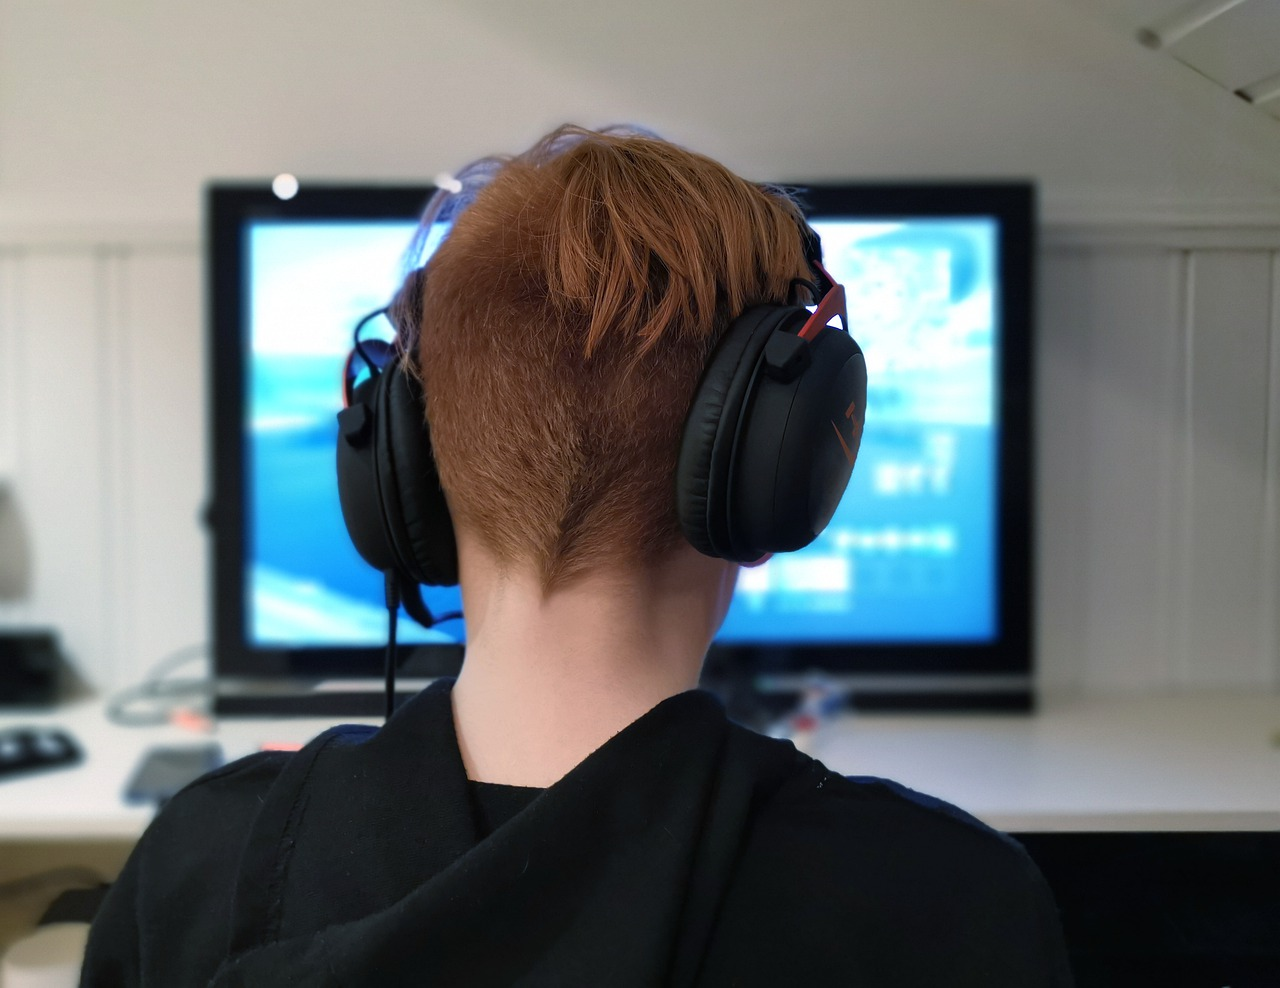 sound-proofing your gaming room